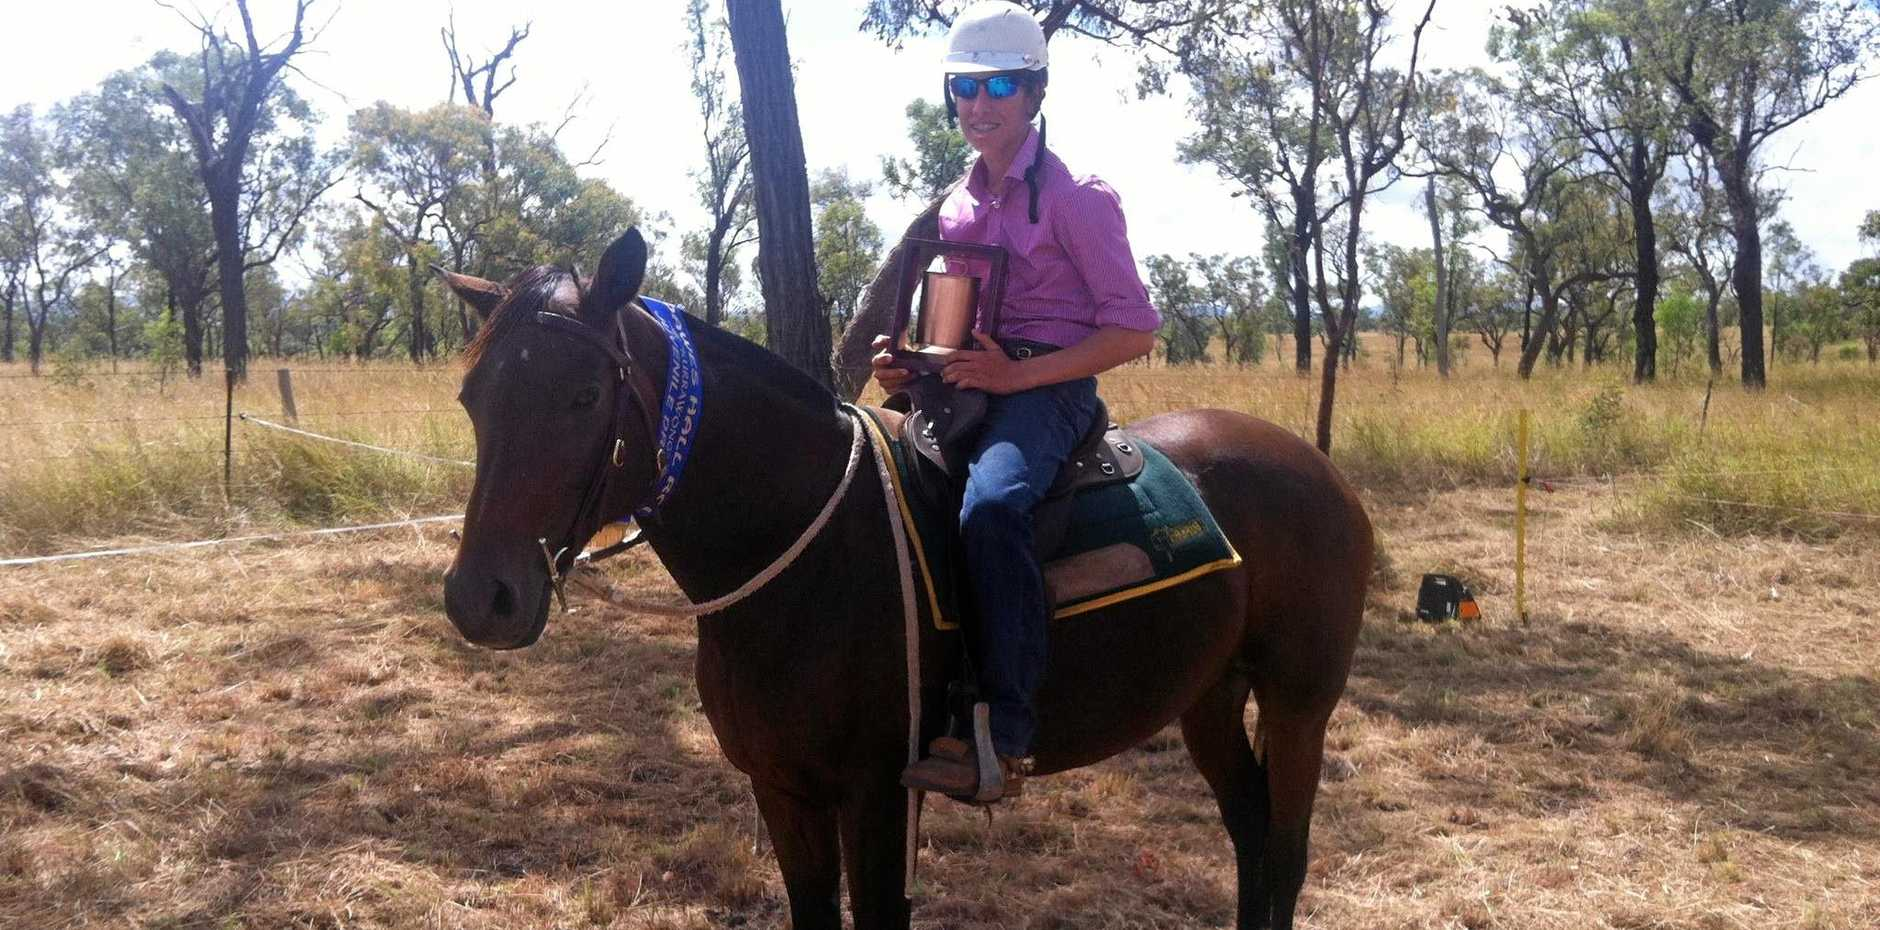 Michael Lacey was left unable to walk or talk dure to serious injuries after a campdrafting accident at Condamine.